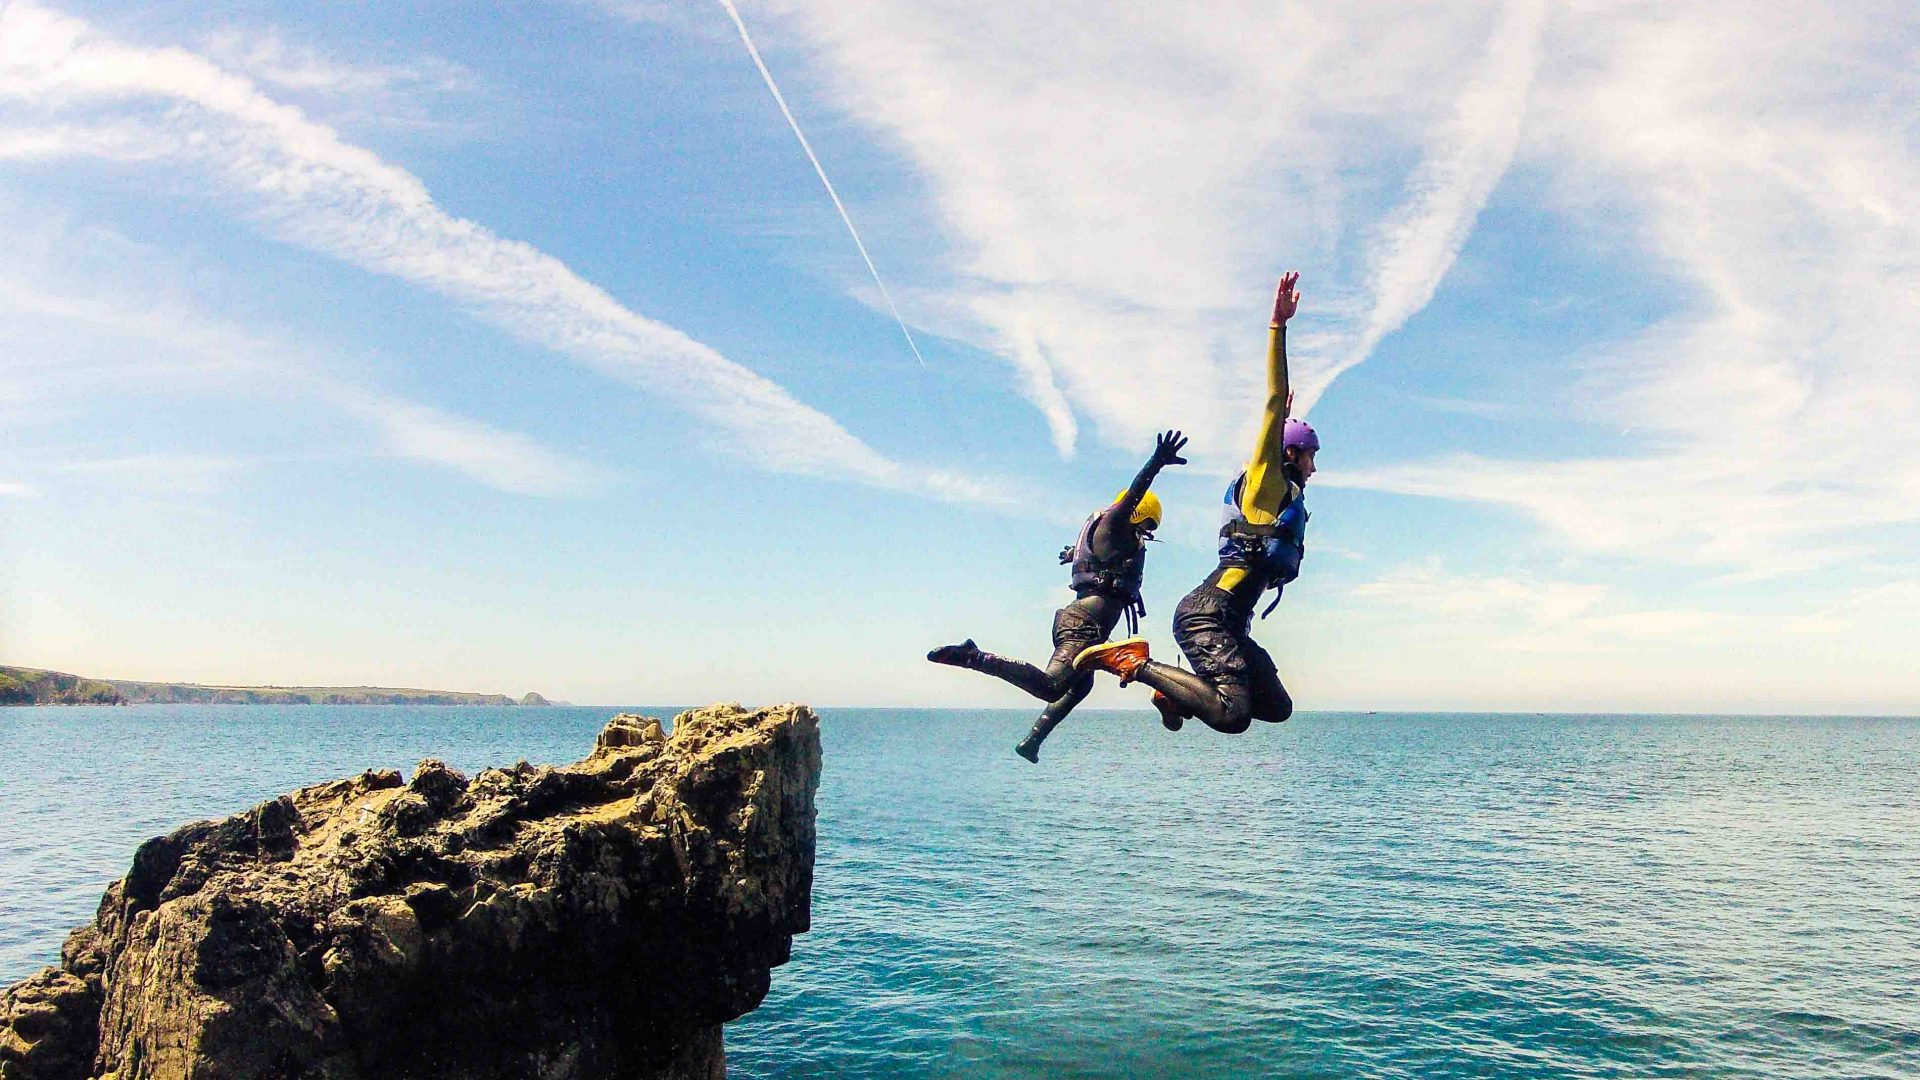 A couple of people jump from a rock ledge to the water during this coasteering adventure.